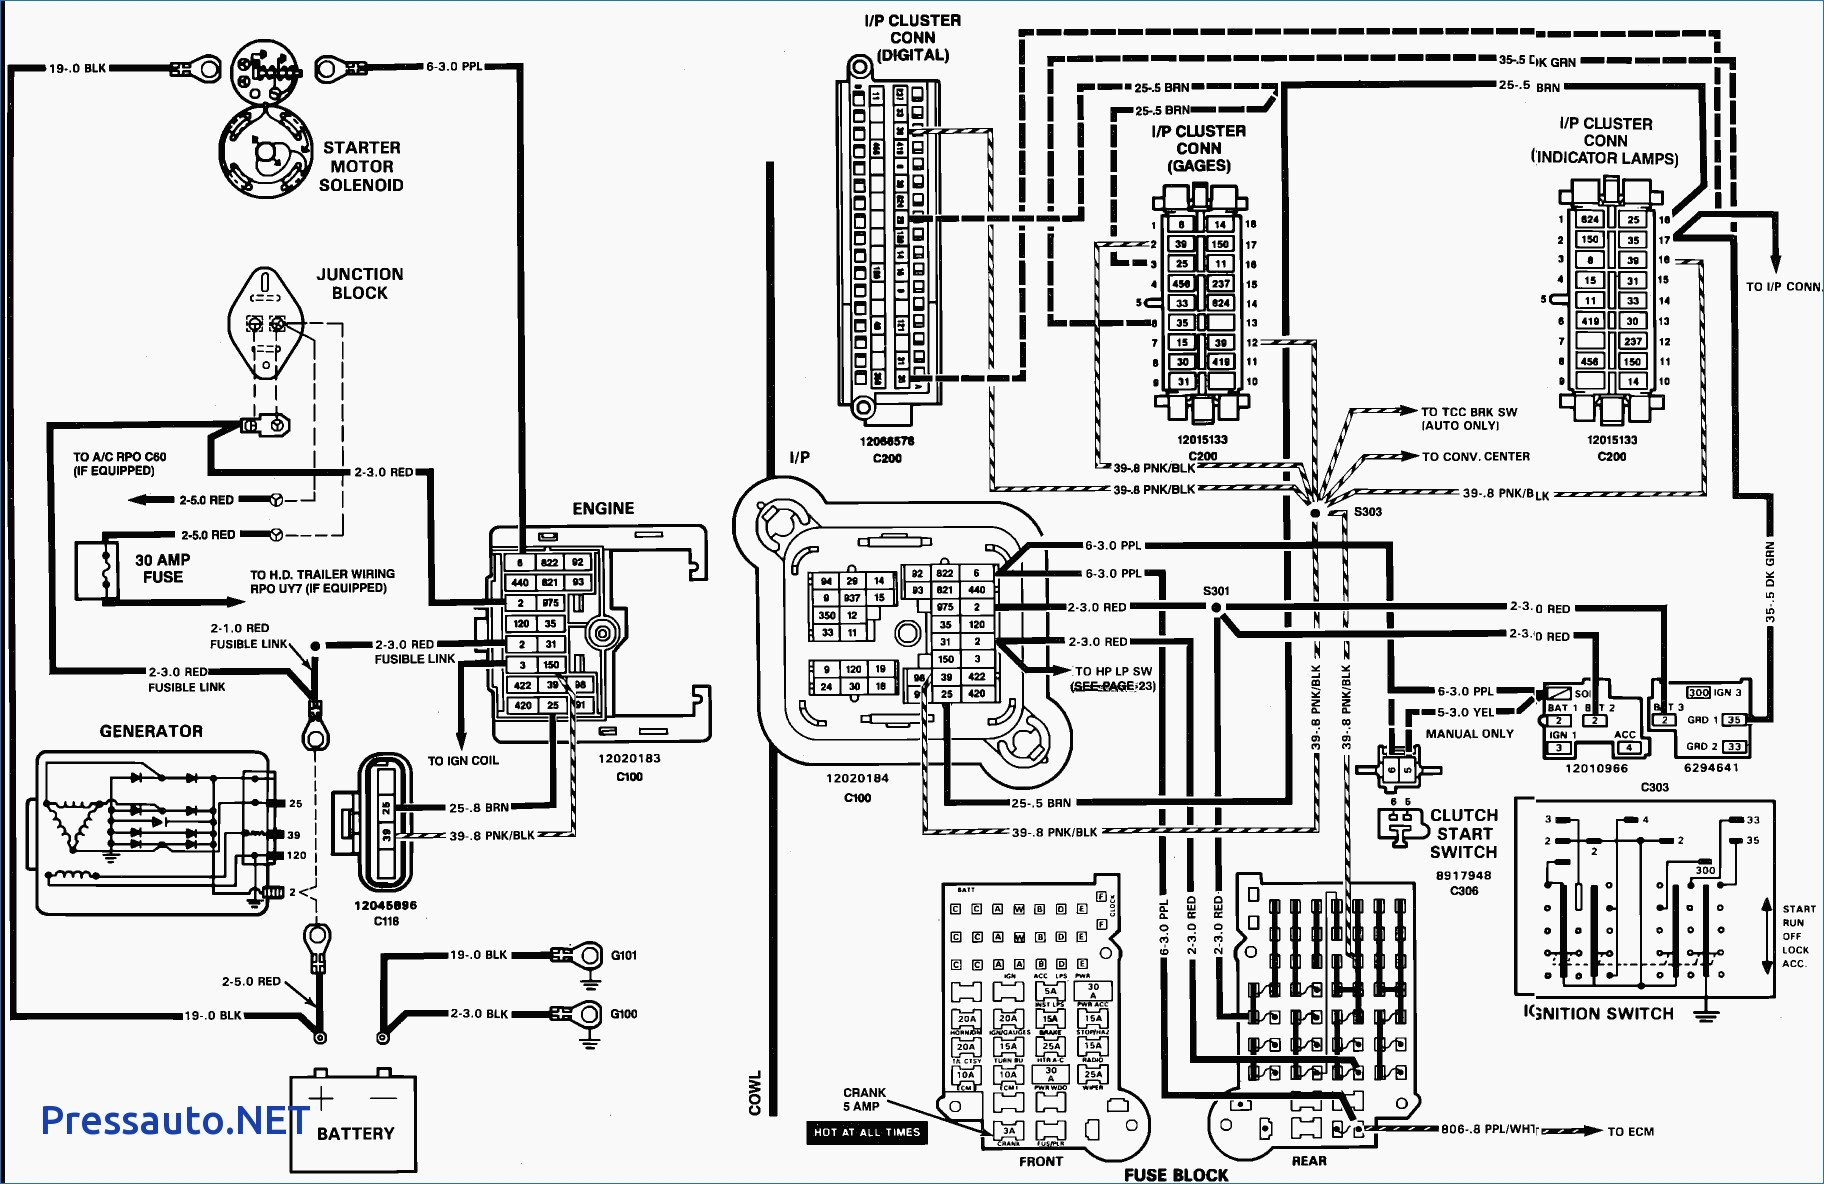 1998 chevy s10 stereo wiring guide